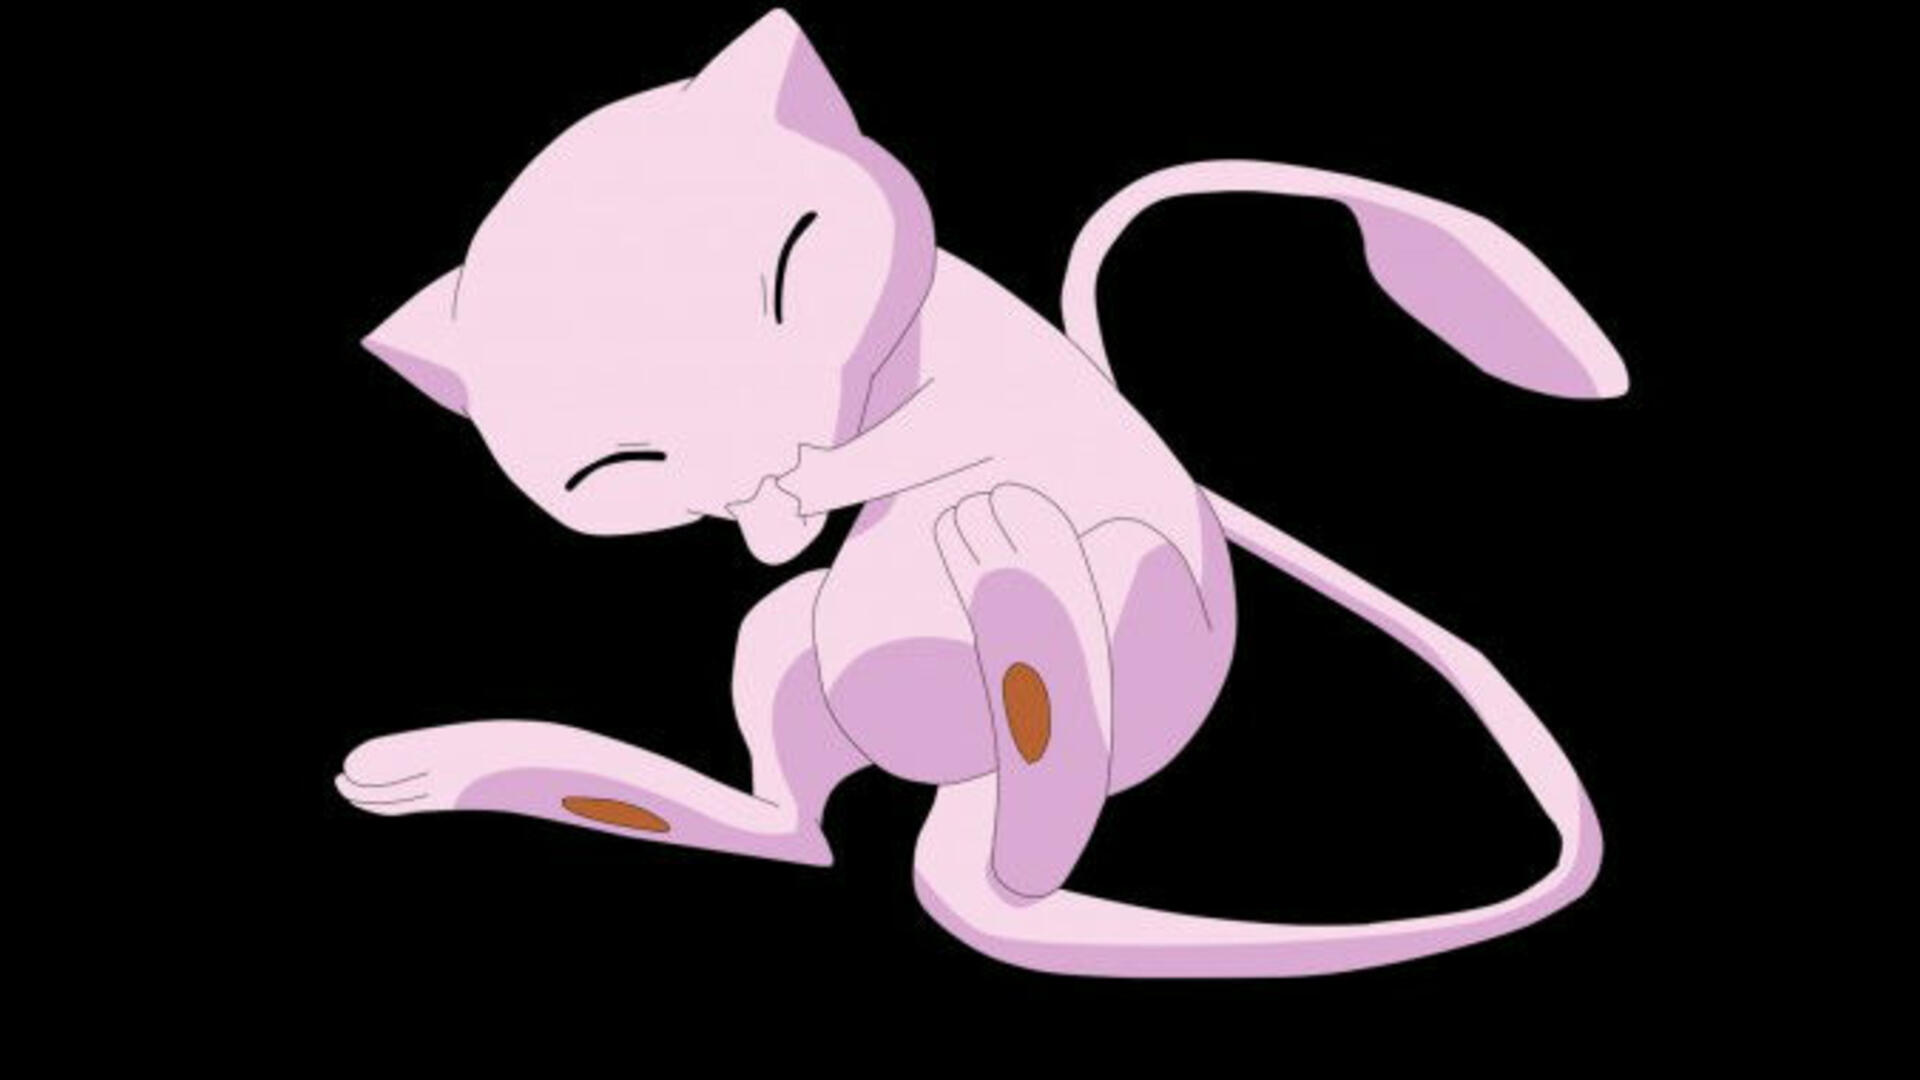 Pokemon Go Gets New Mythical And Legendary T-Shirts, Mew Looks Like it's Mooning Us